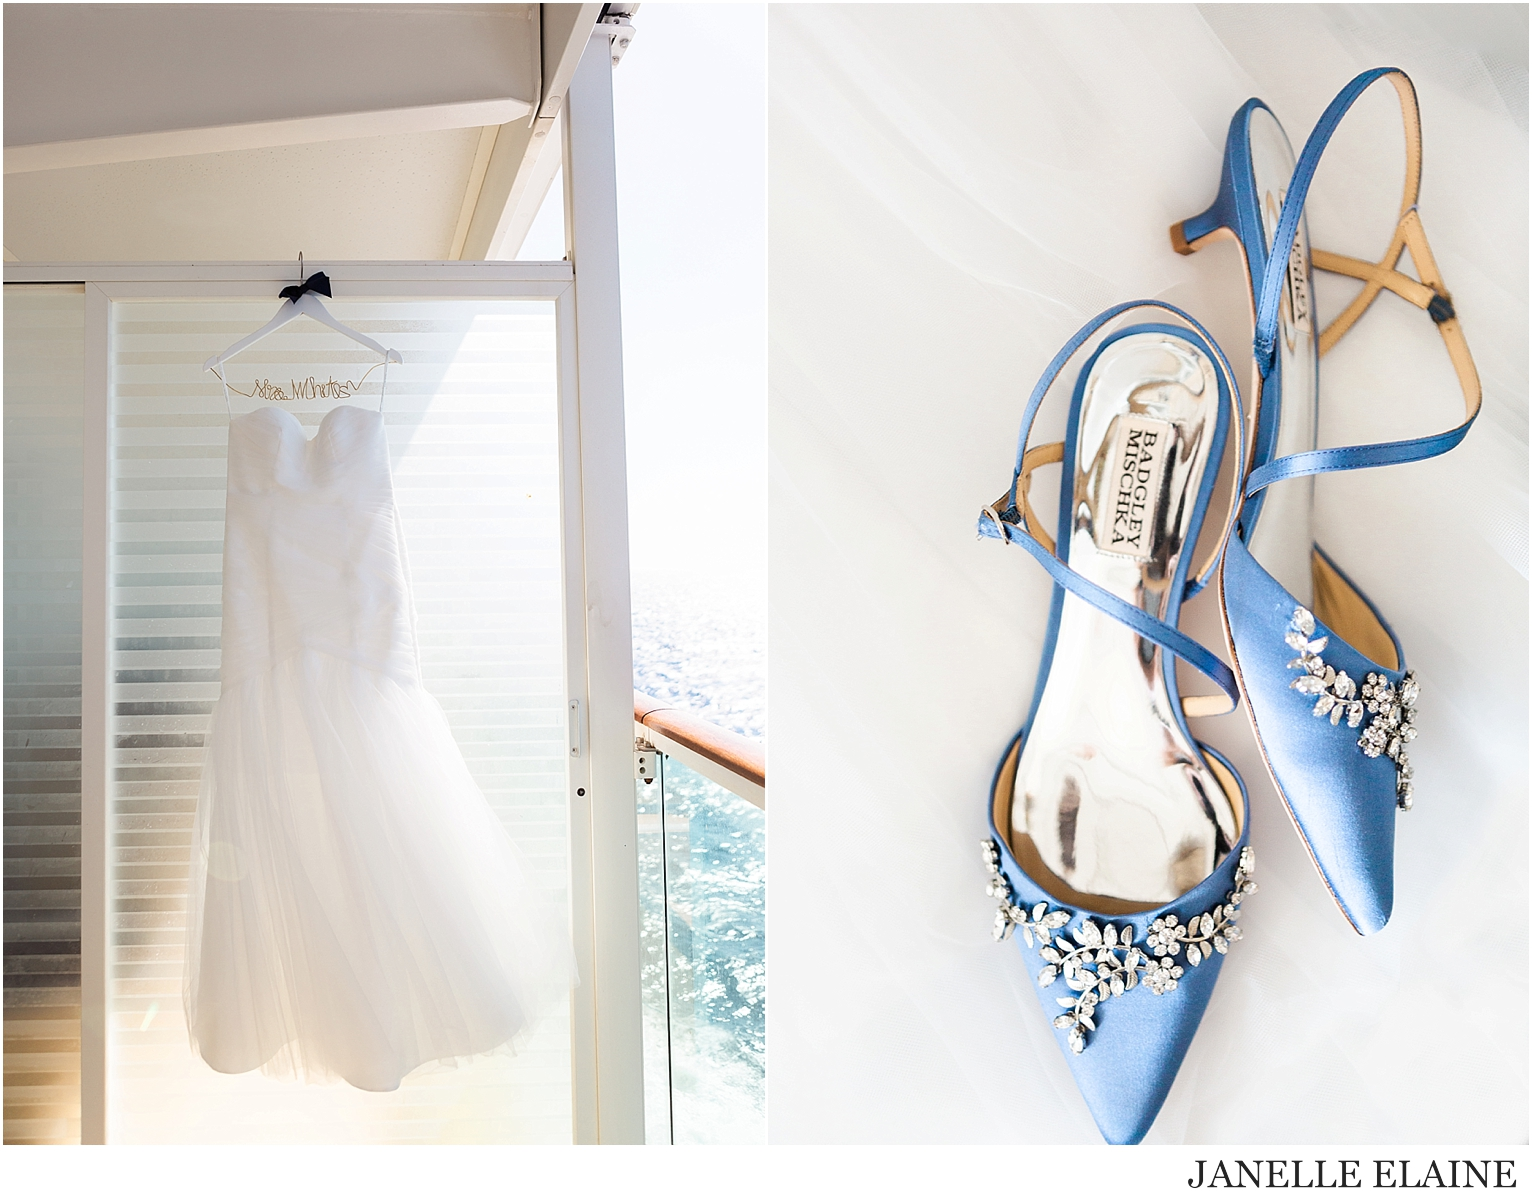 white wedding-royal caribbean-janelle elaine photography-5.jpg